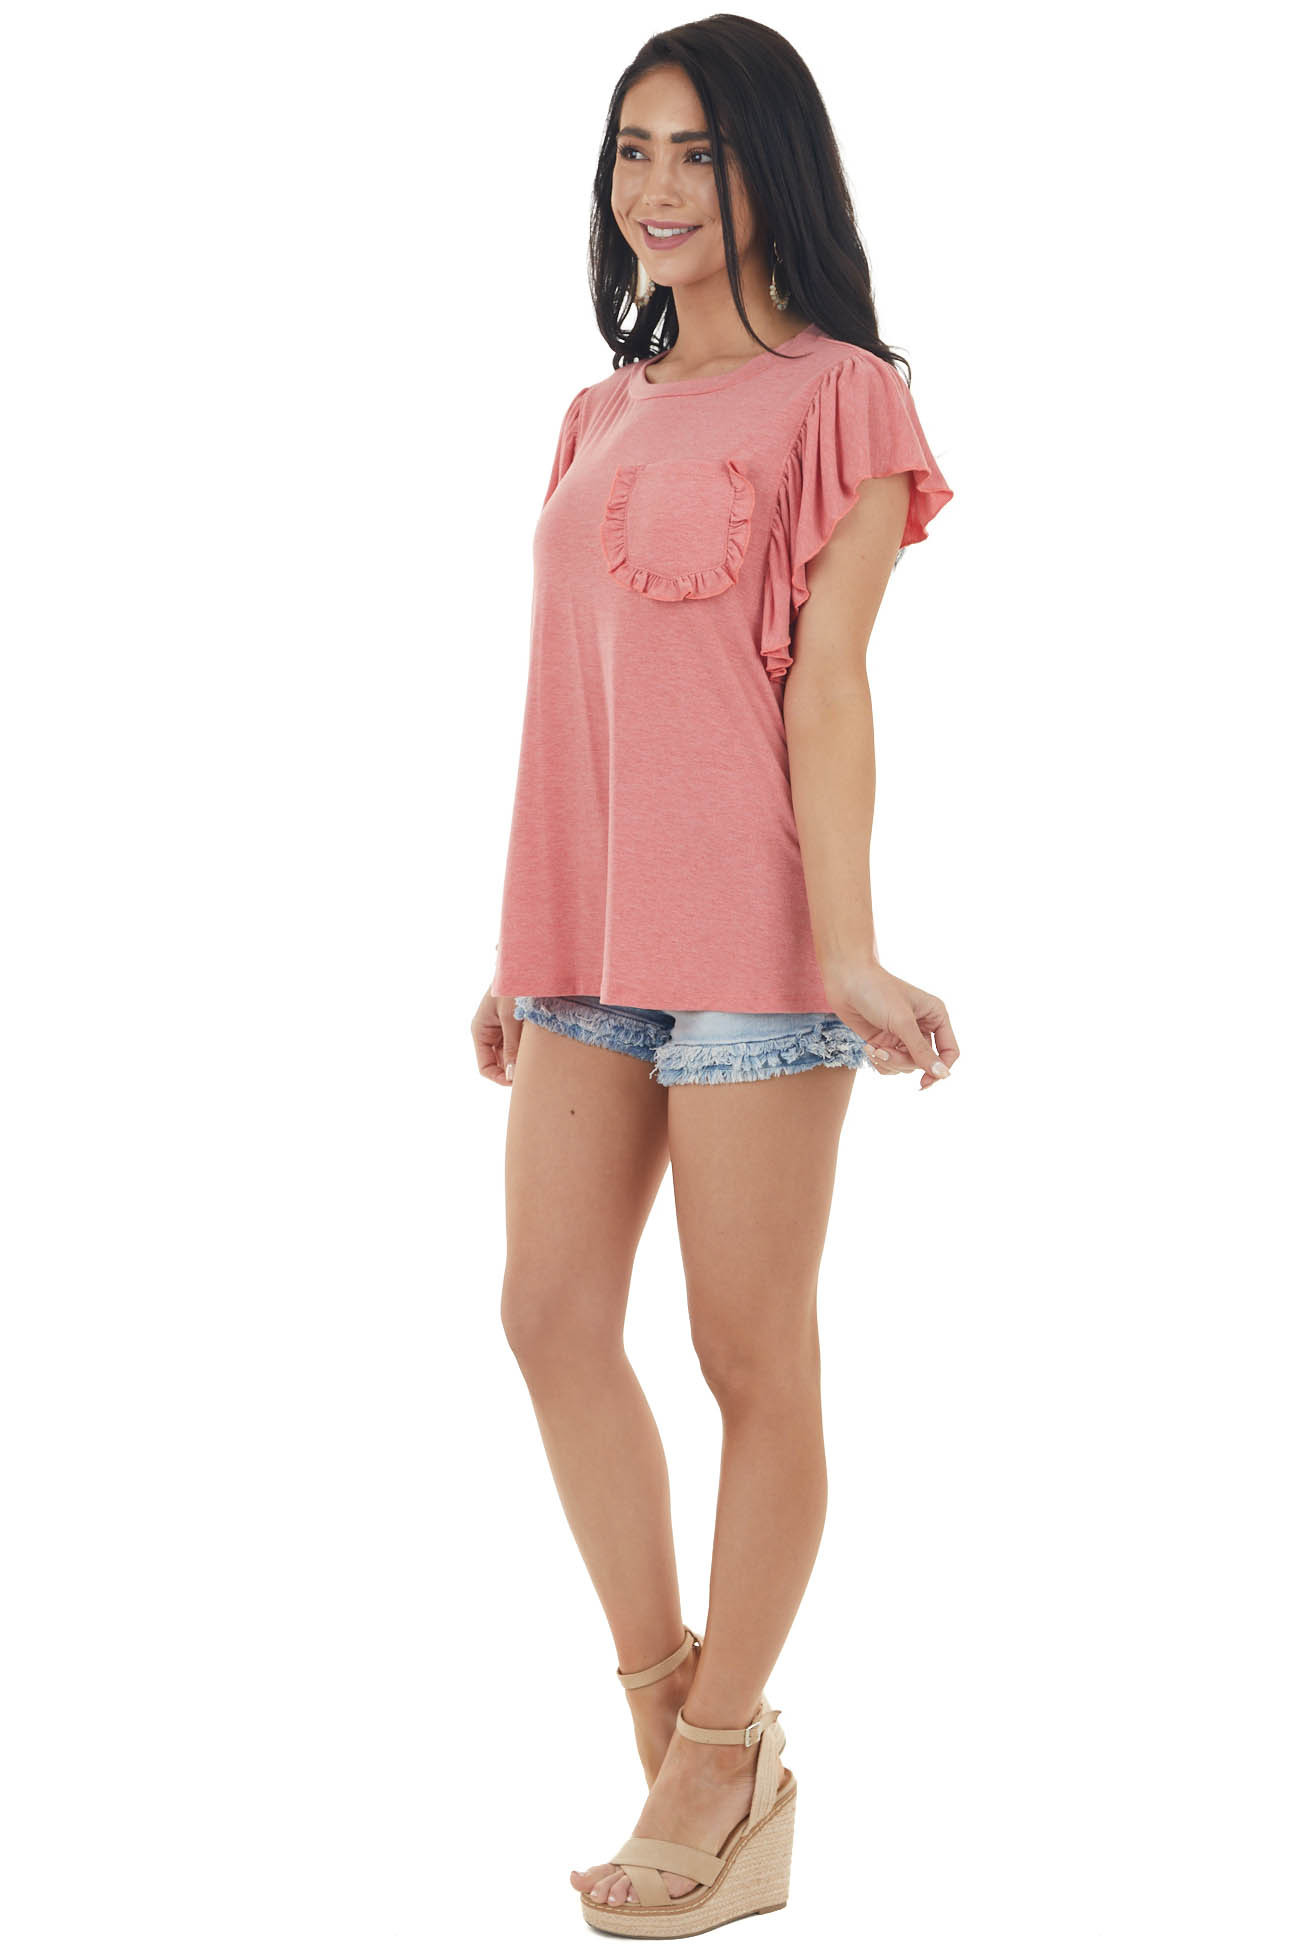 Coral Pink Short Ruffled Sleeve Knit Top with Ruffled Pocket